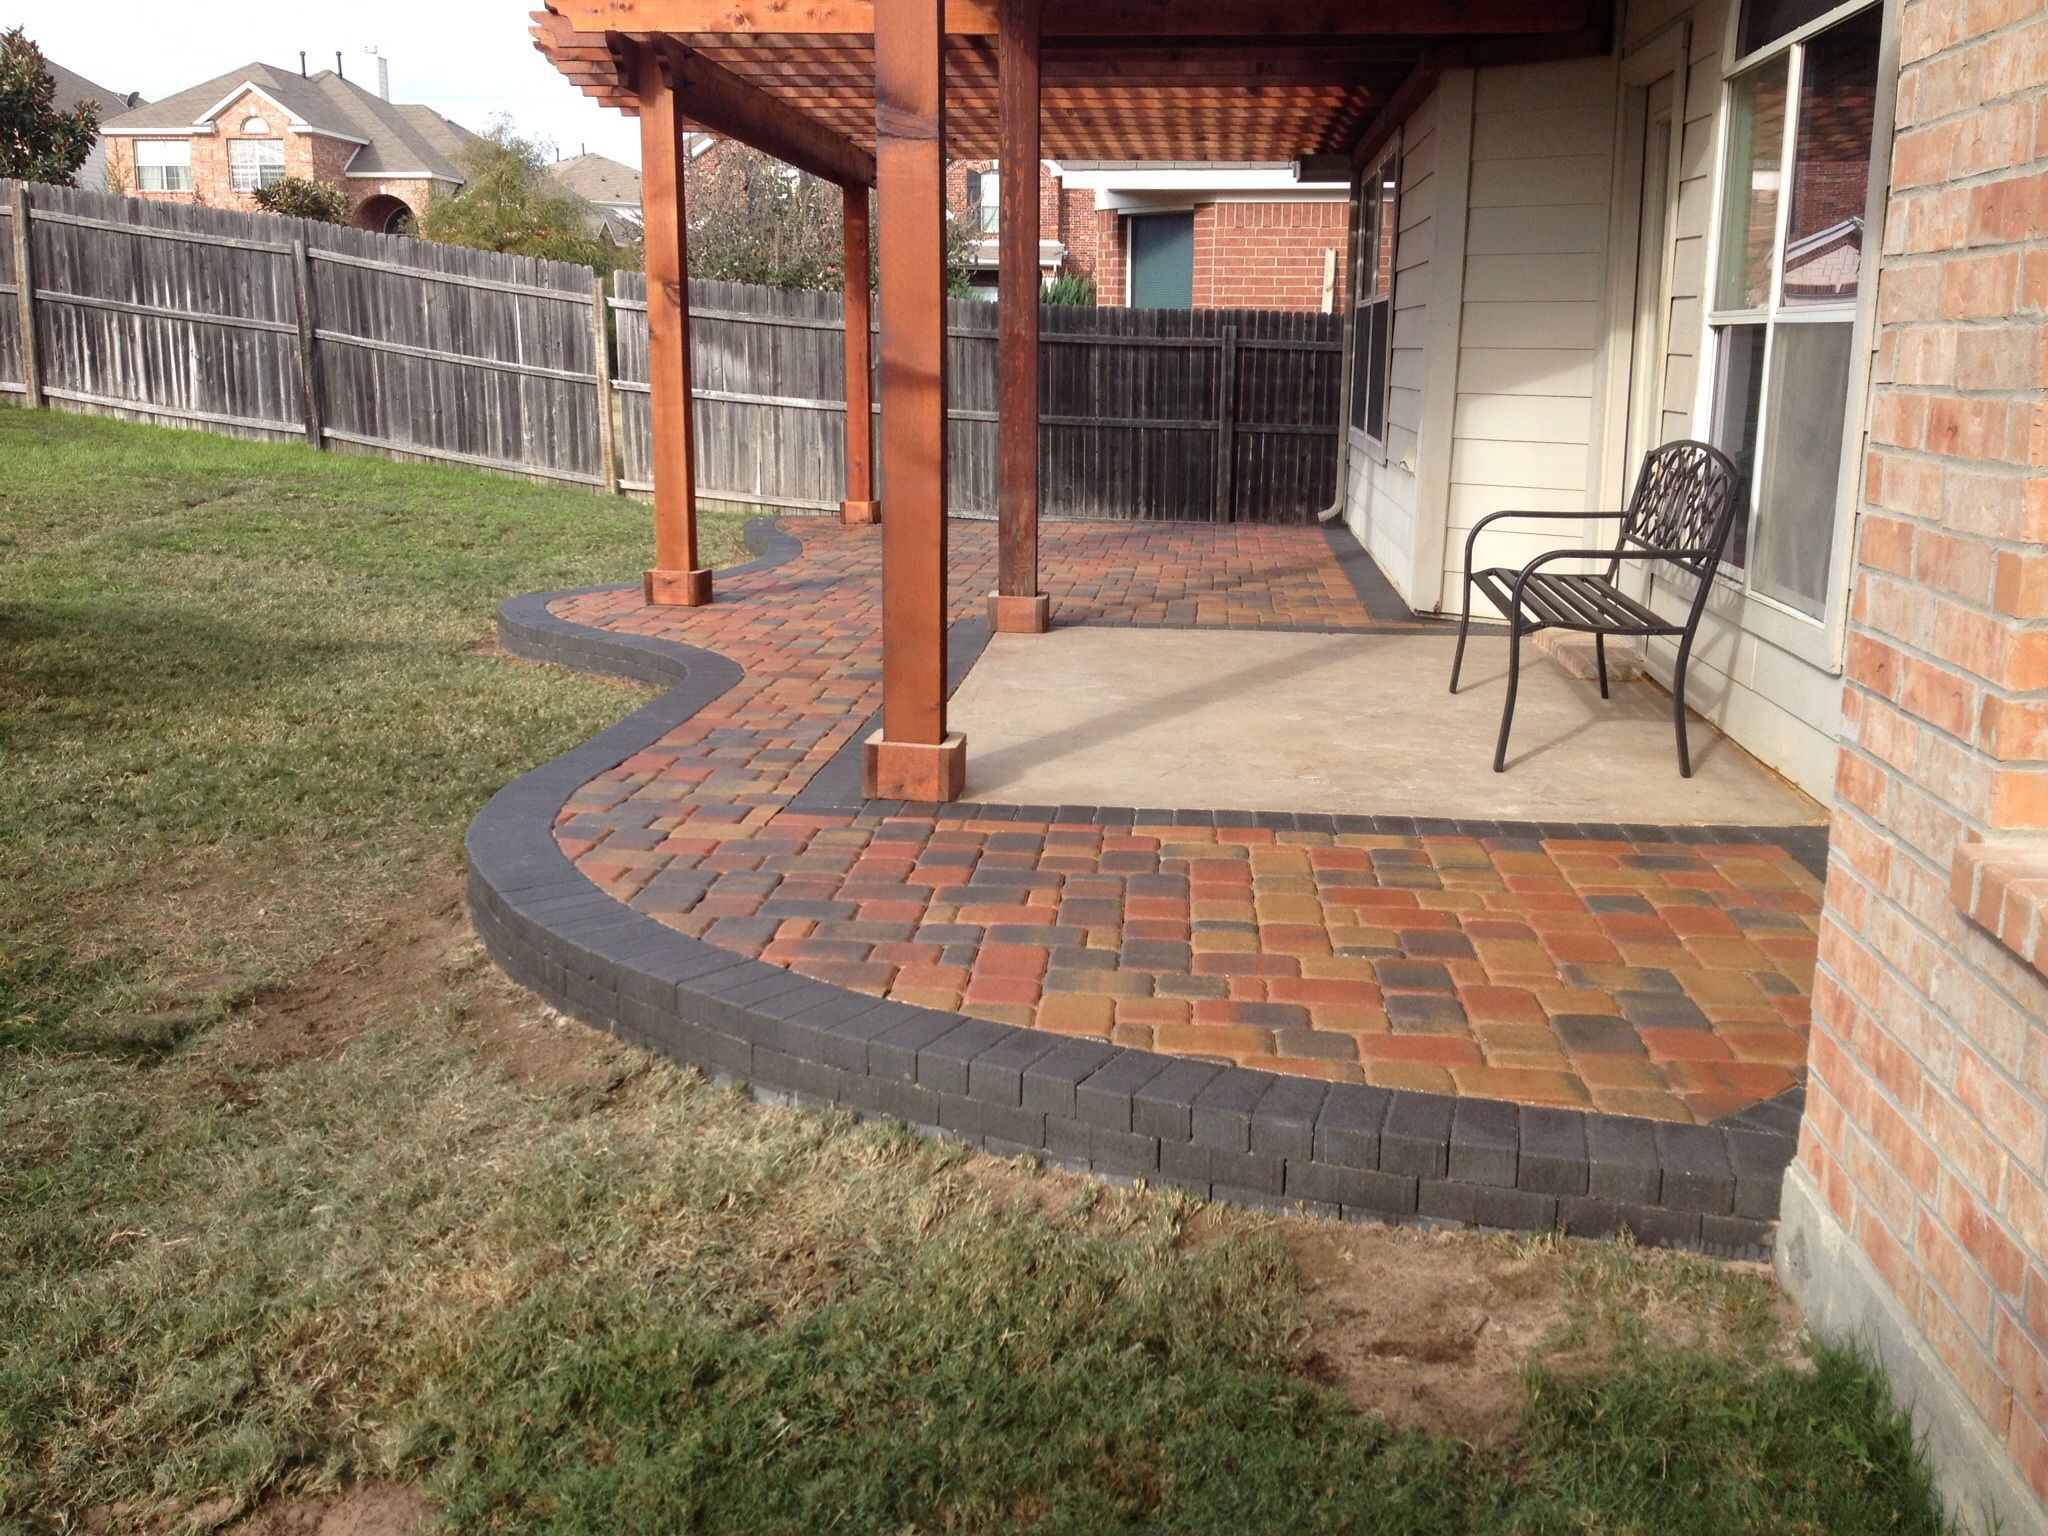 Attractive Multicolored Paver Patio Installed Around An Existing Concrete Slab